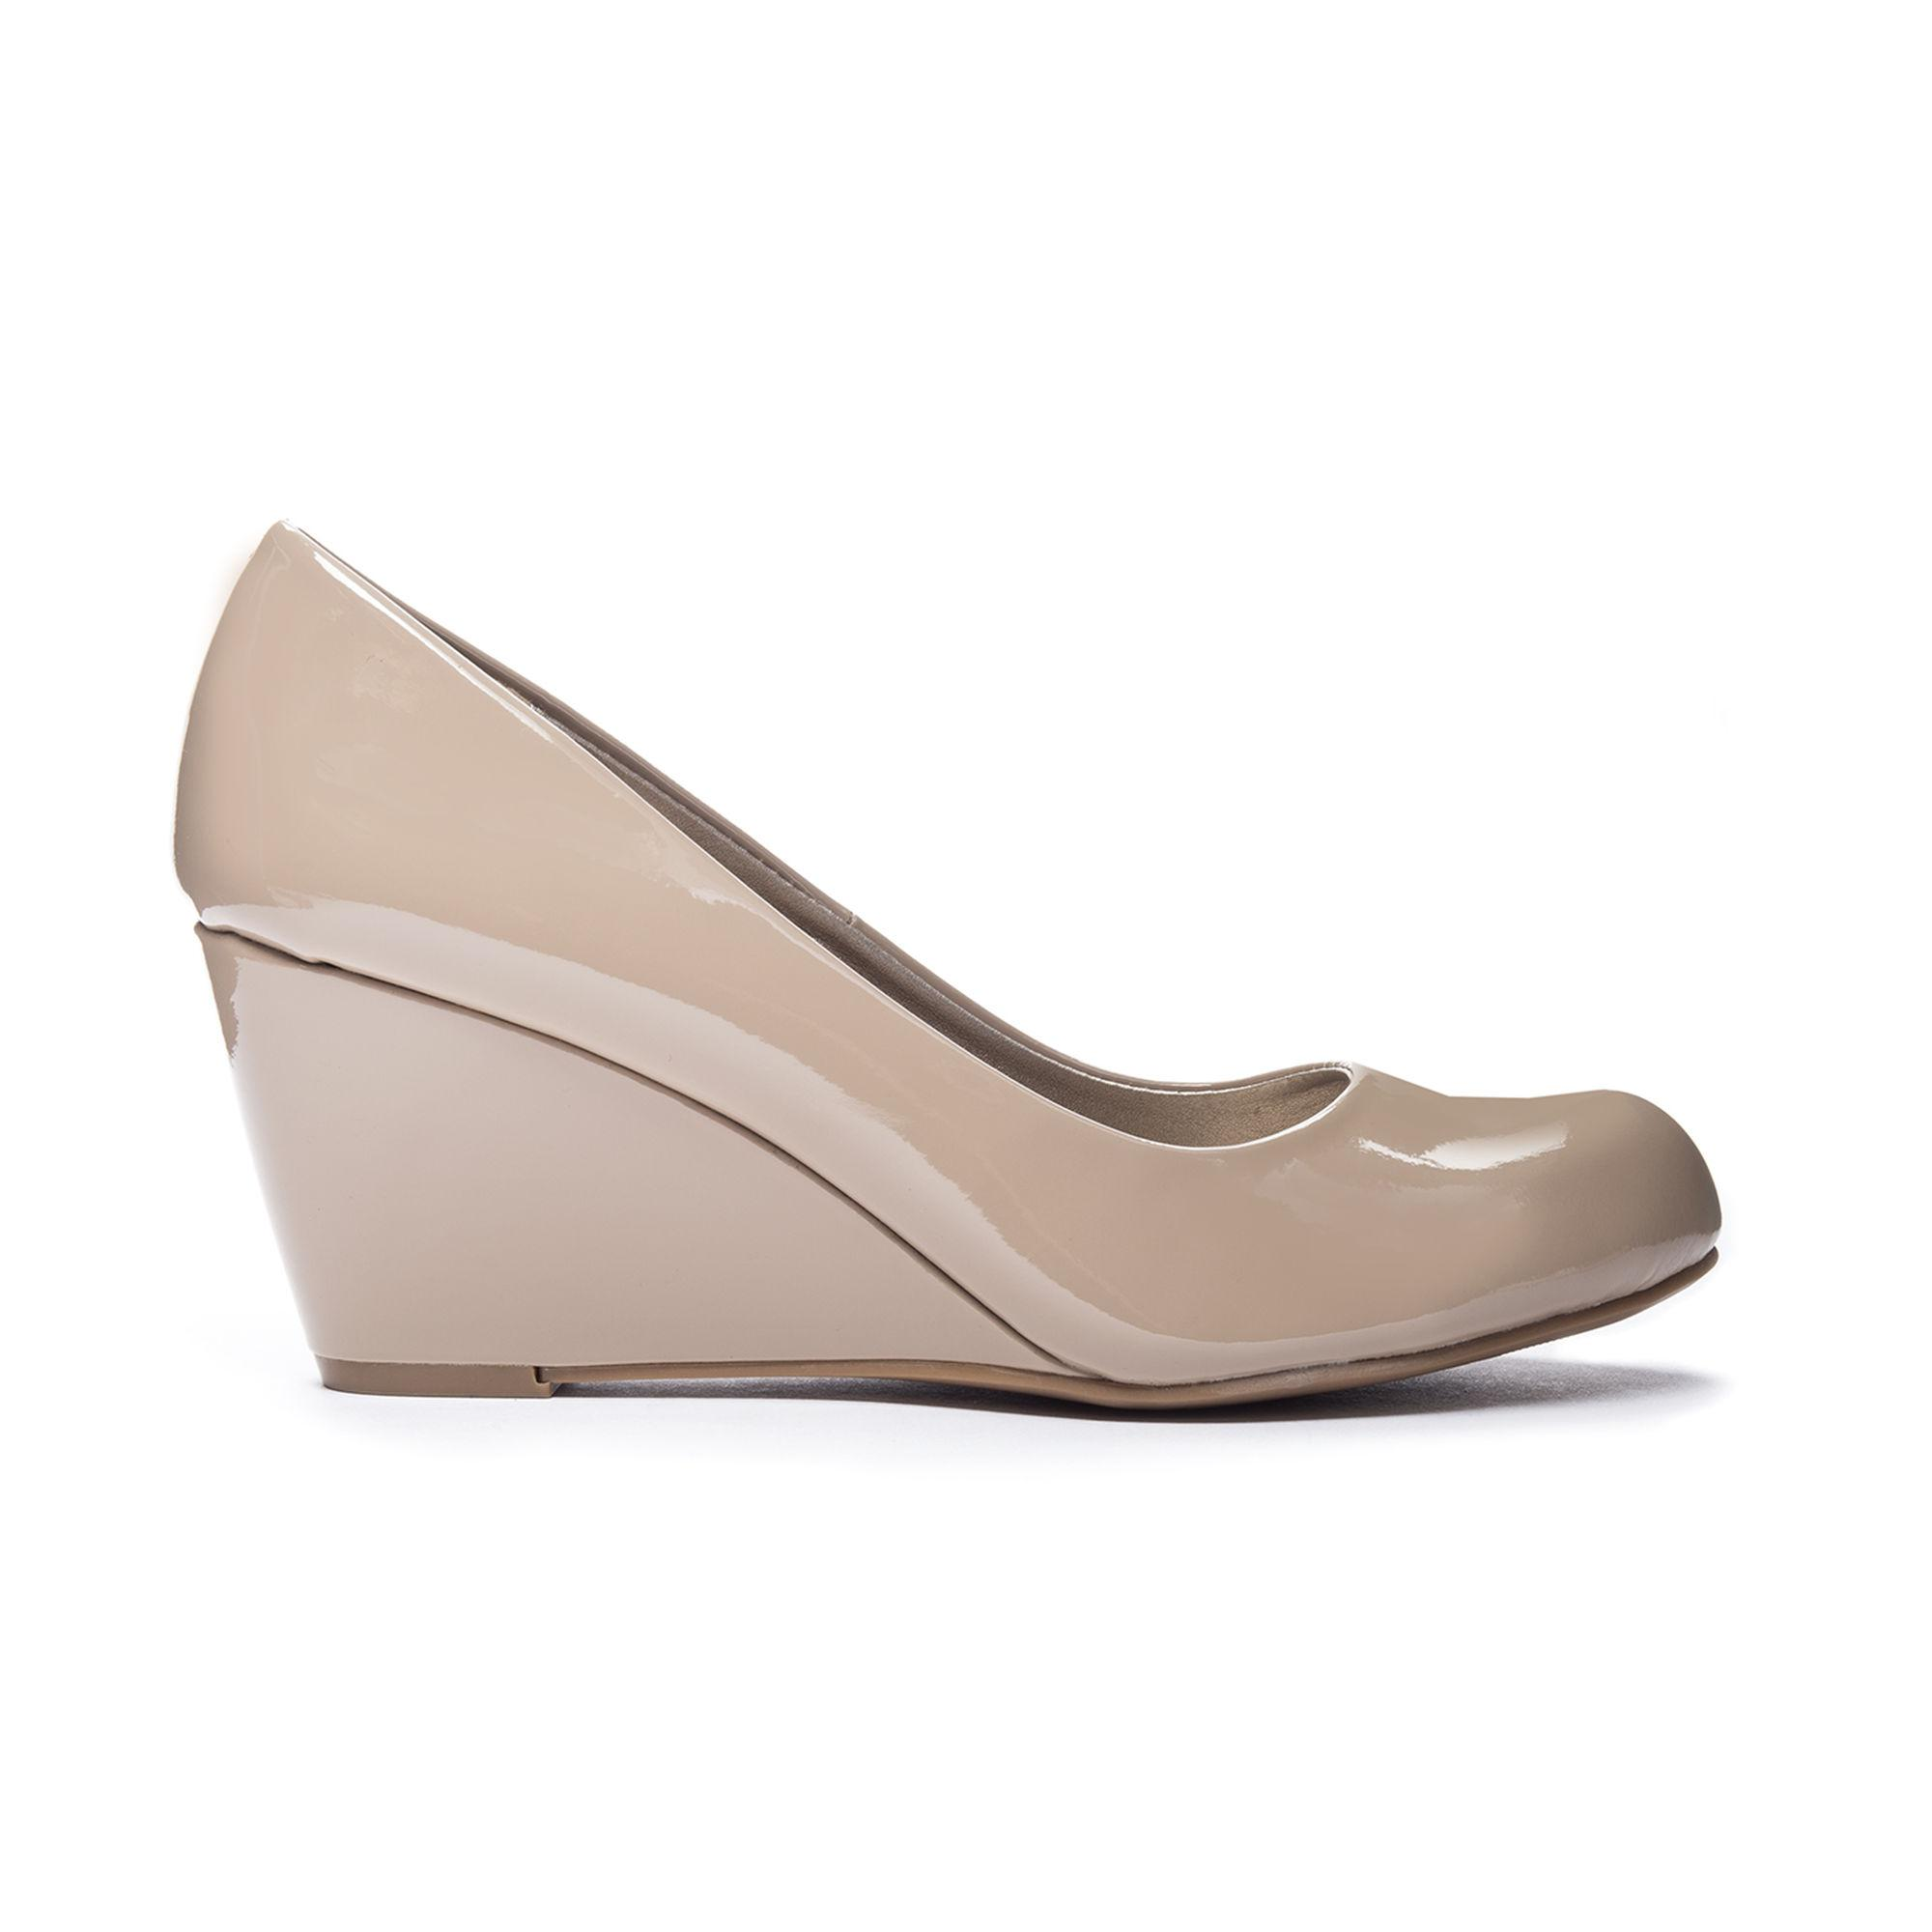 CL by Chinese Laundry Womens Nima Wedge Pump, Grey, Size